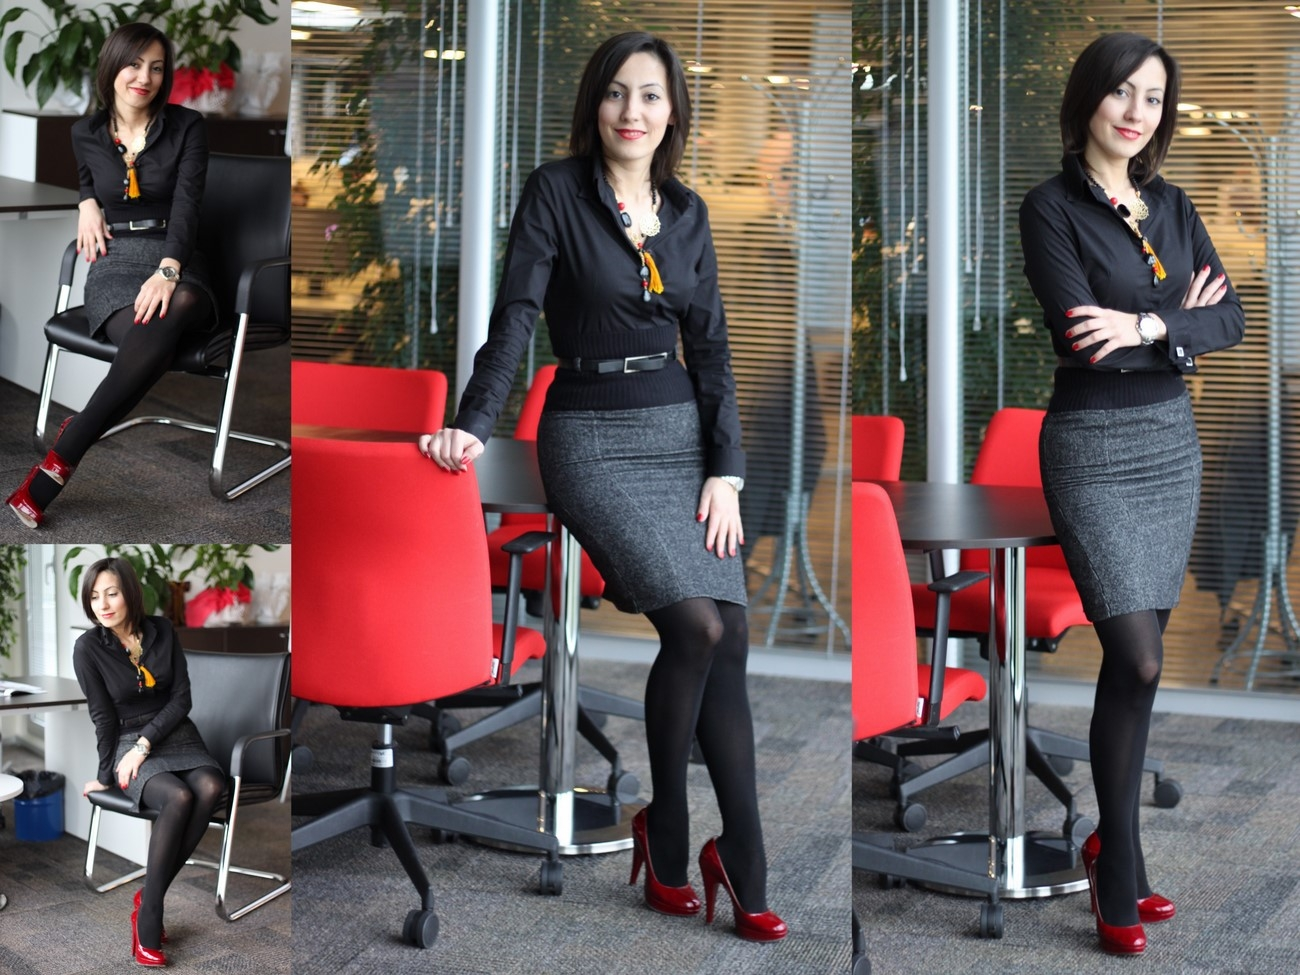 office+woman+look+tight+skirt+pantyhose+